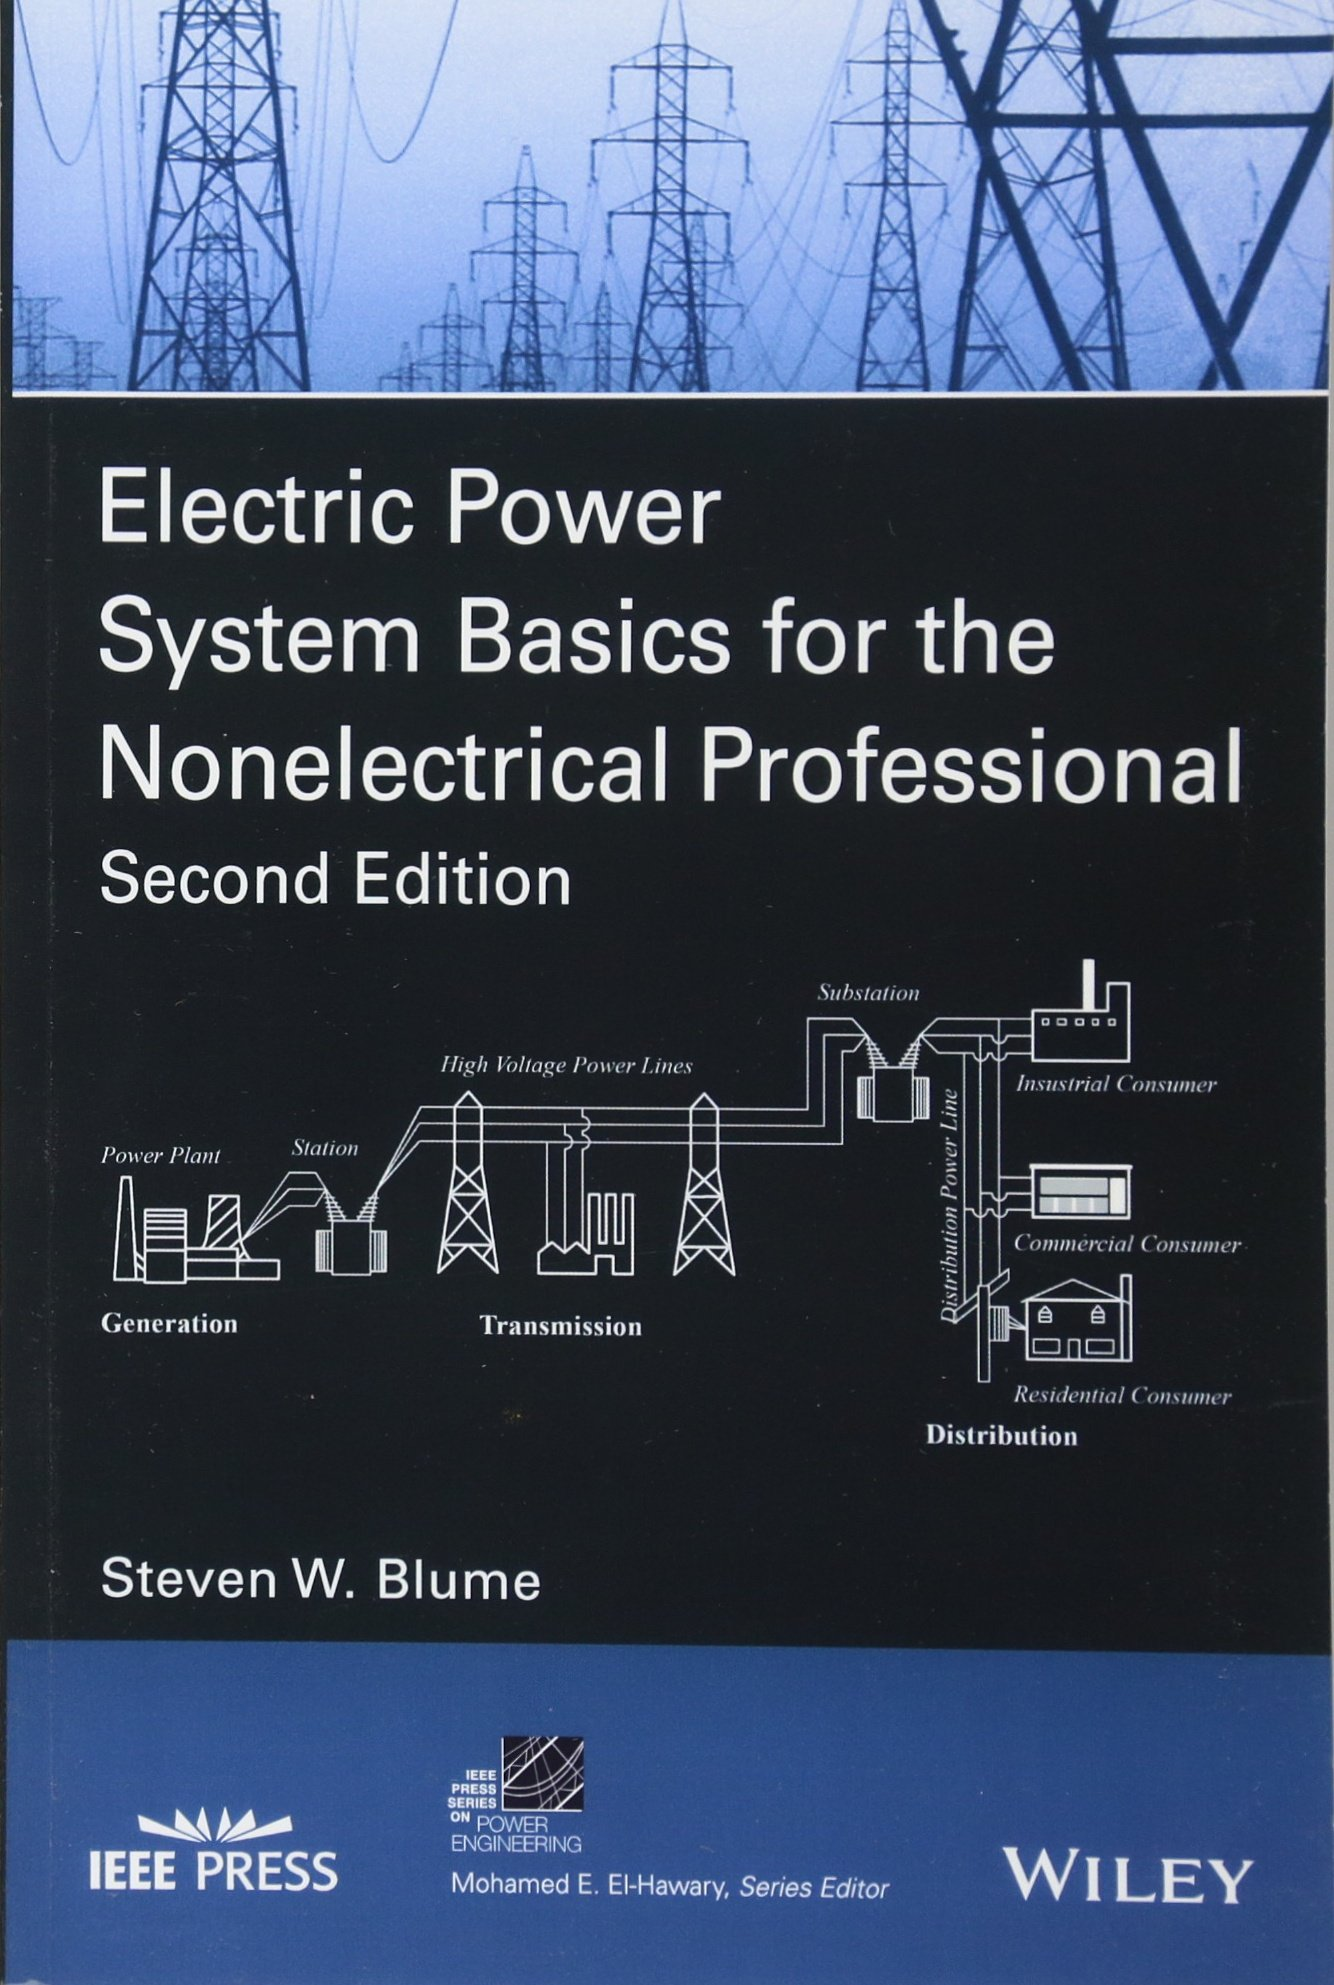 Electric Power System Basics for the Nonelectrical Professional ...